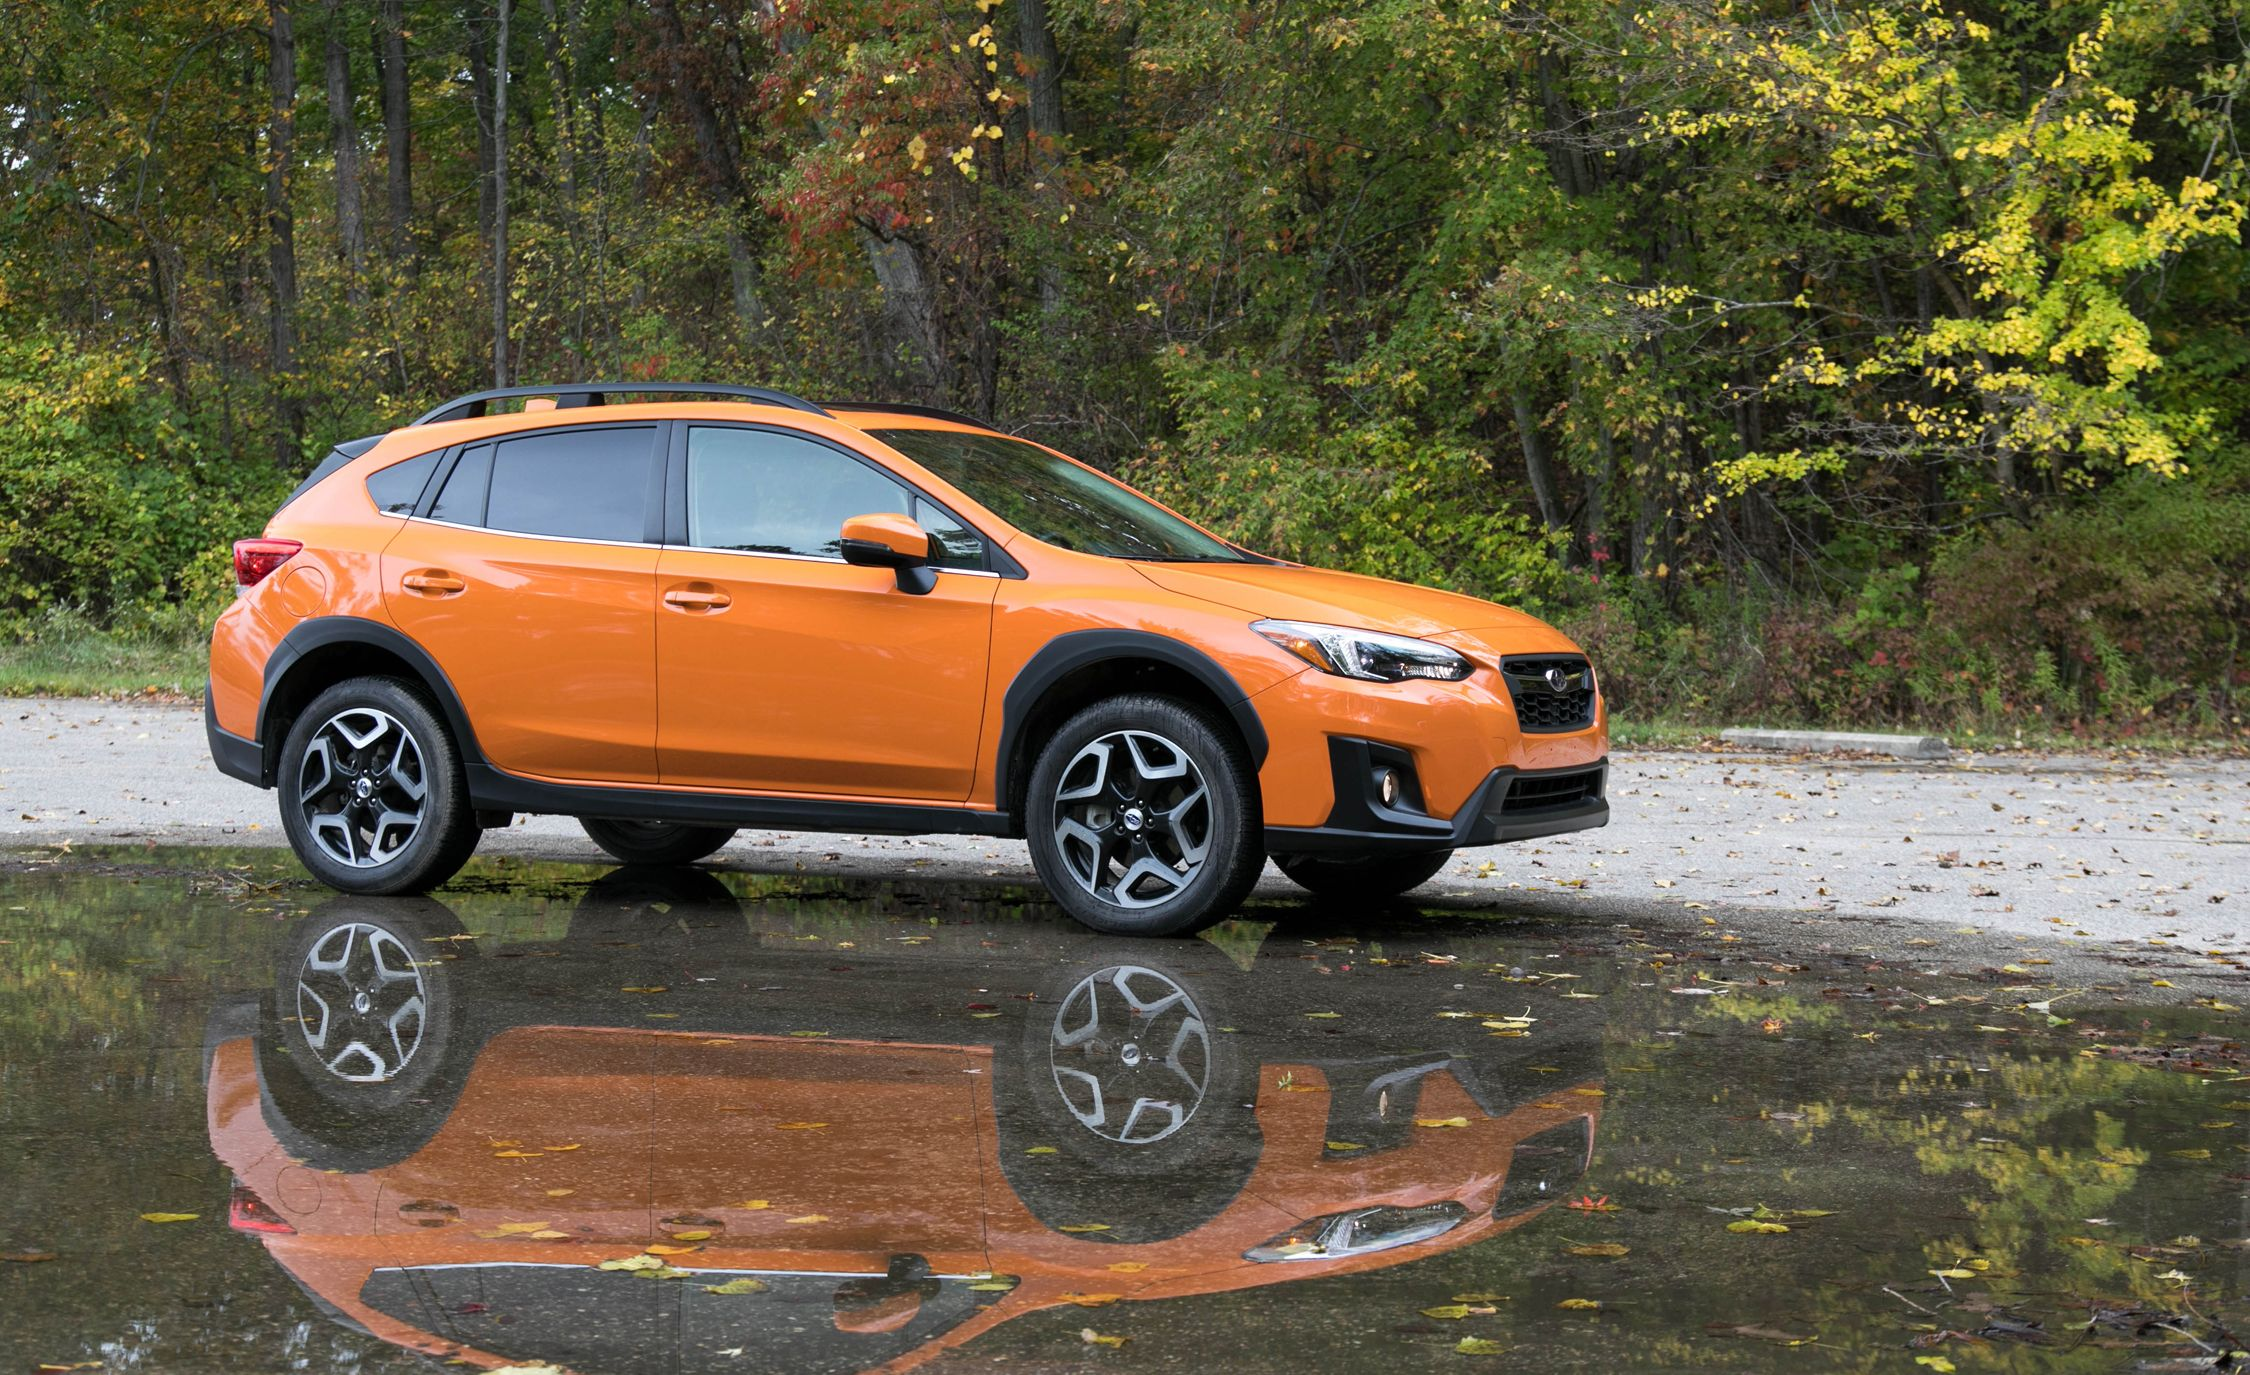 subaru crosstrek reviews subaru crosstrek price photos and specs car and driver. Black Bedroom Furniture Sets. Home Design Ideas